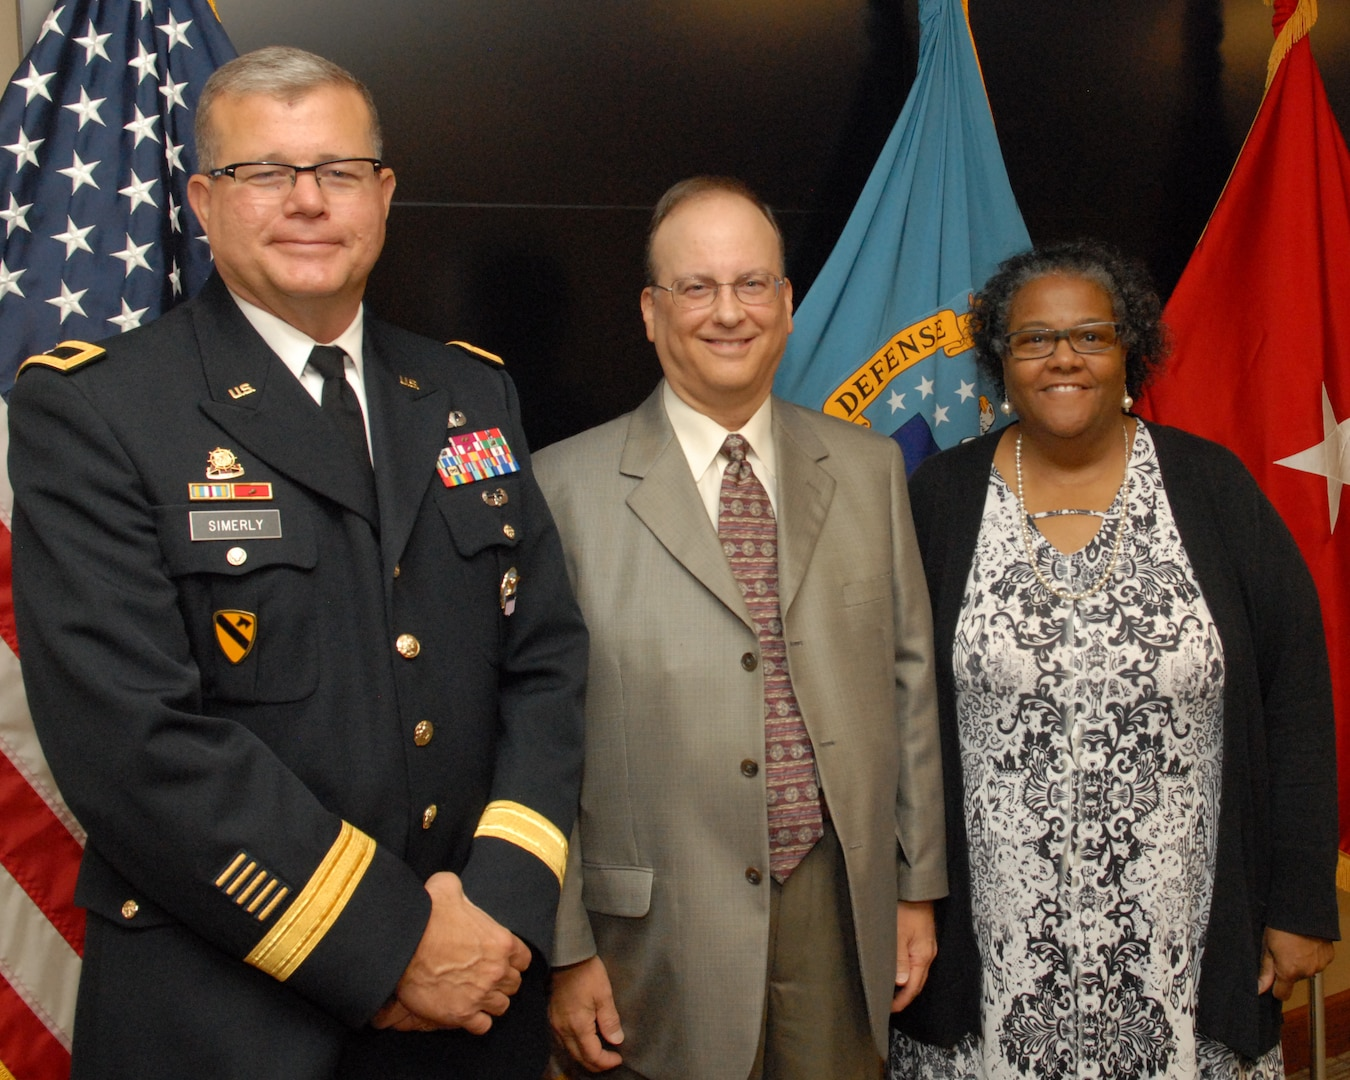 Anita Parker (right) and Philip DiBabbo (center) pose with DLA Troop Support Commander Army Brig. Gen. Mark Simerly (left) after being recognized for their service during a retirement ceremony Sept. 26 in Philadelphia.